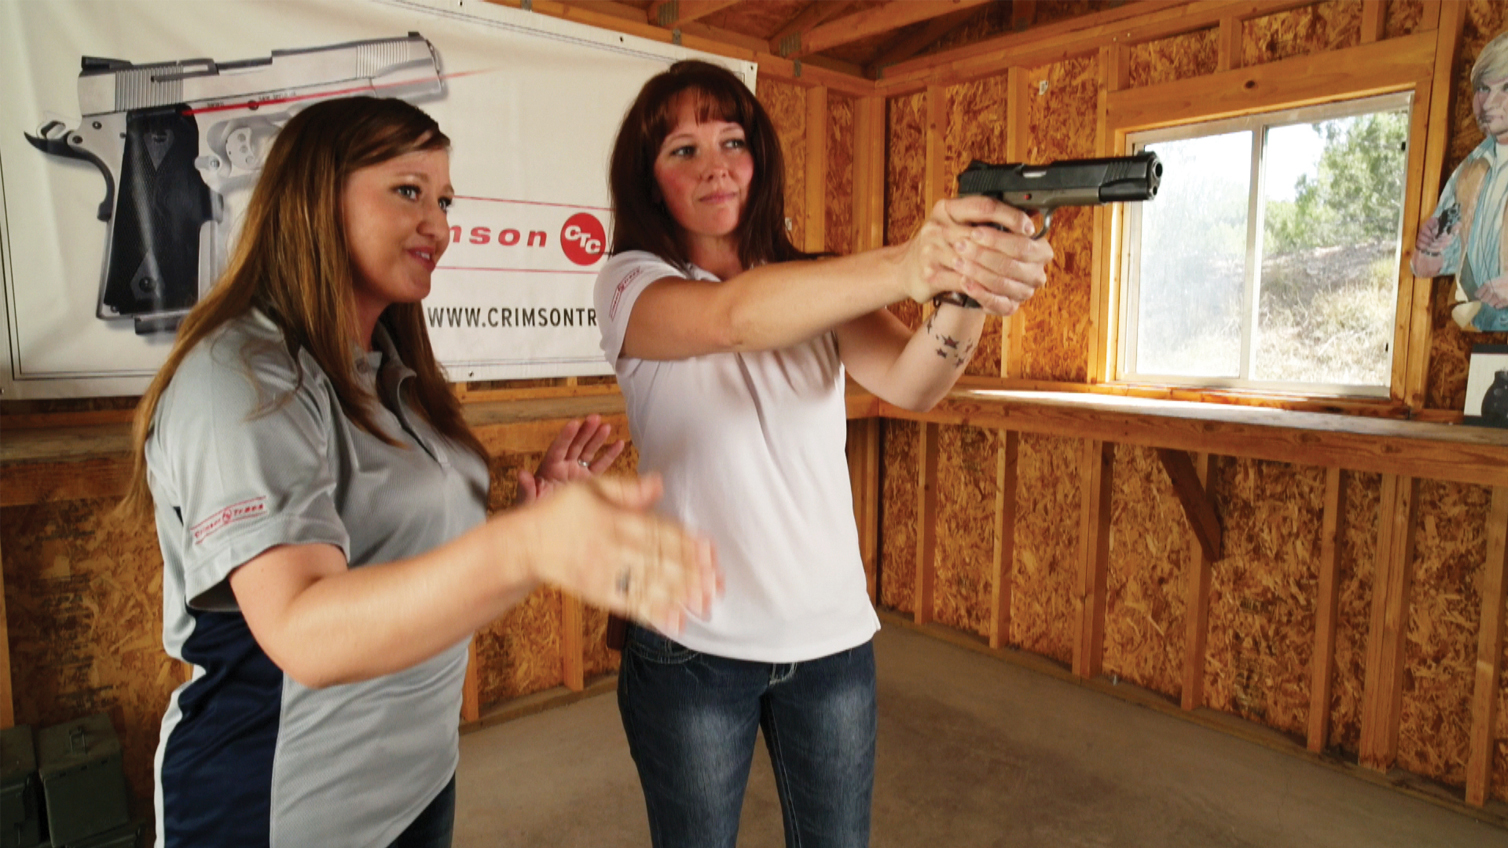 Training With Lasers at Gunsite